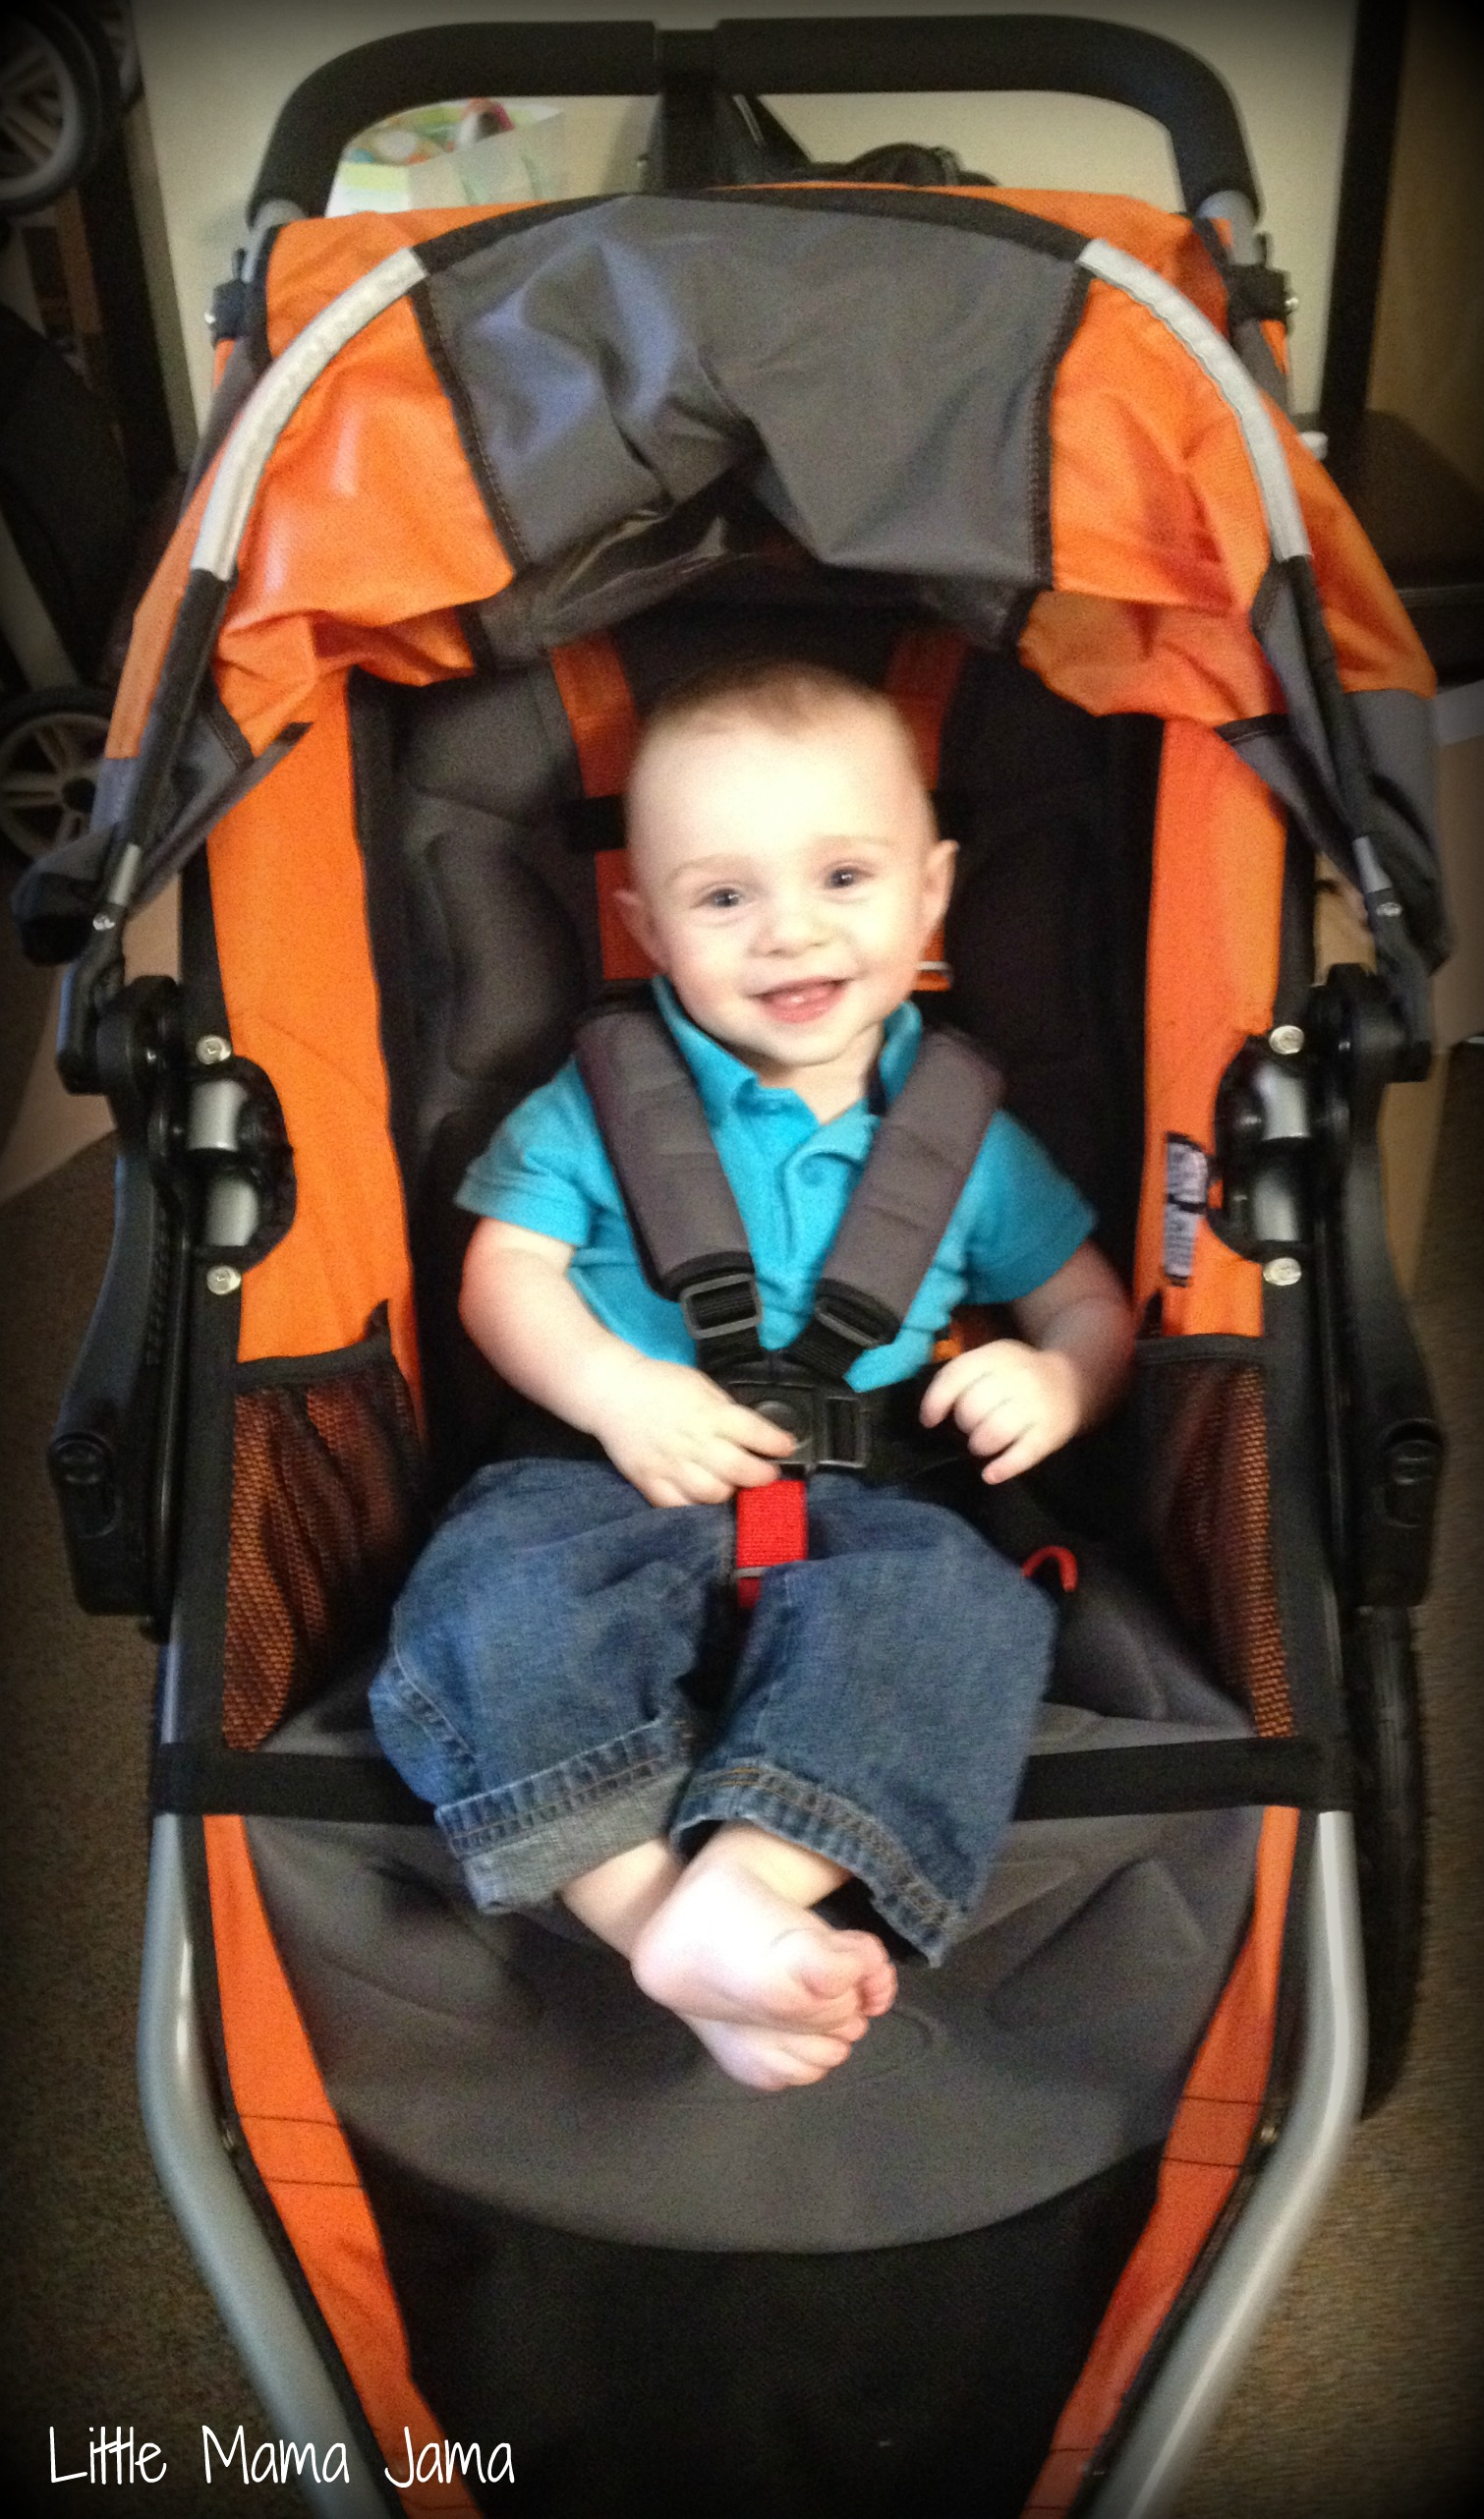 Wordless Wednesday: The New Stroller Arrived!